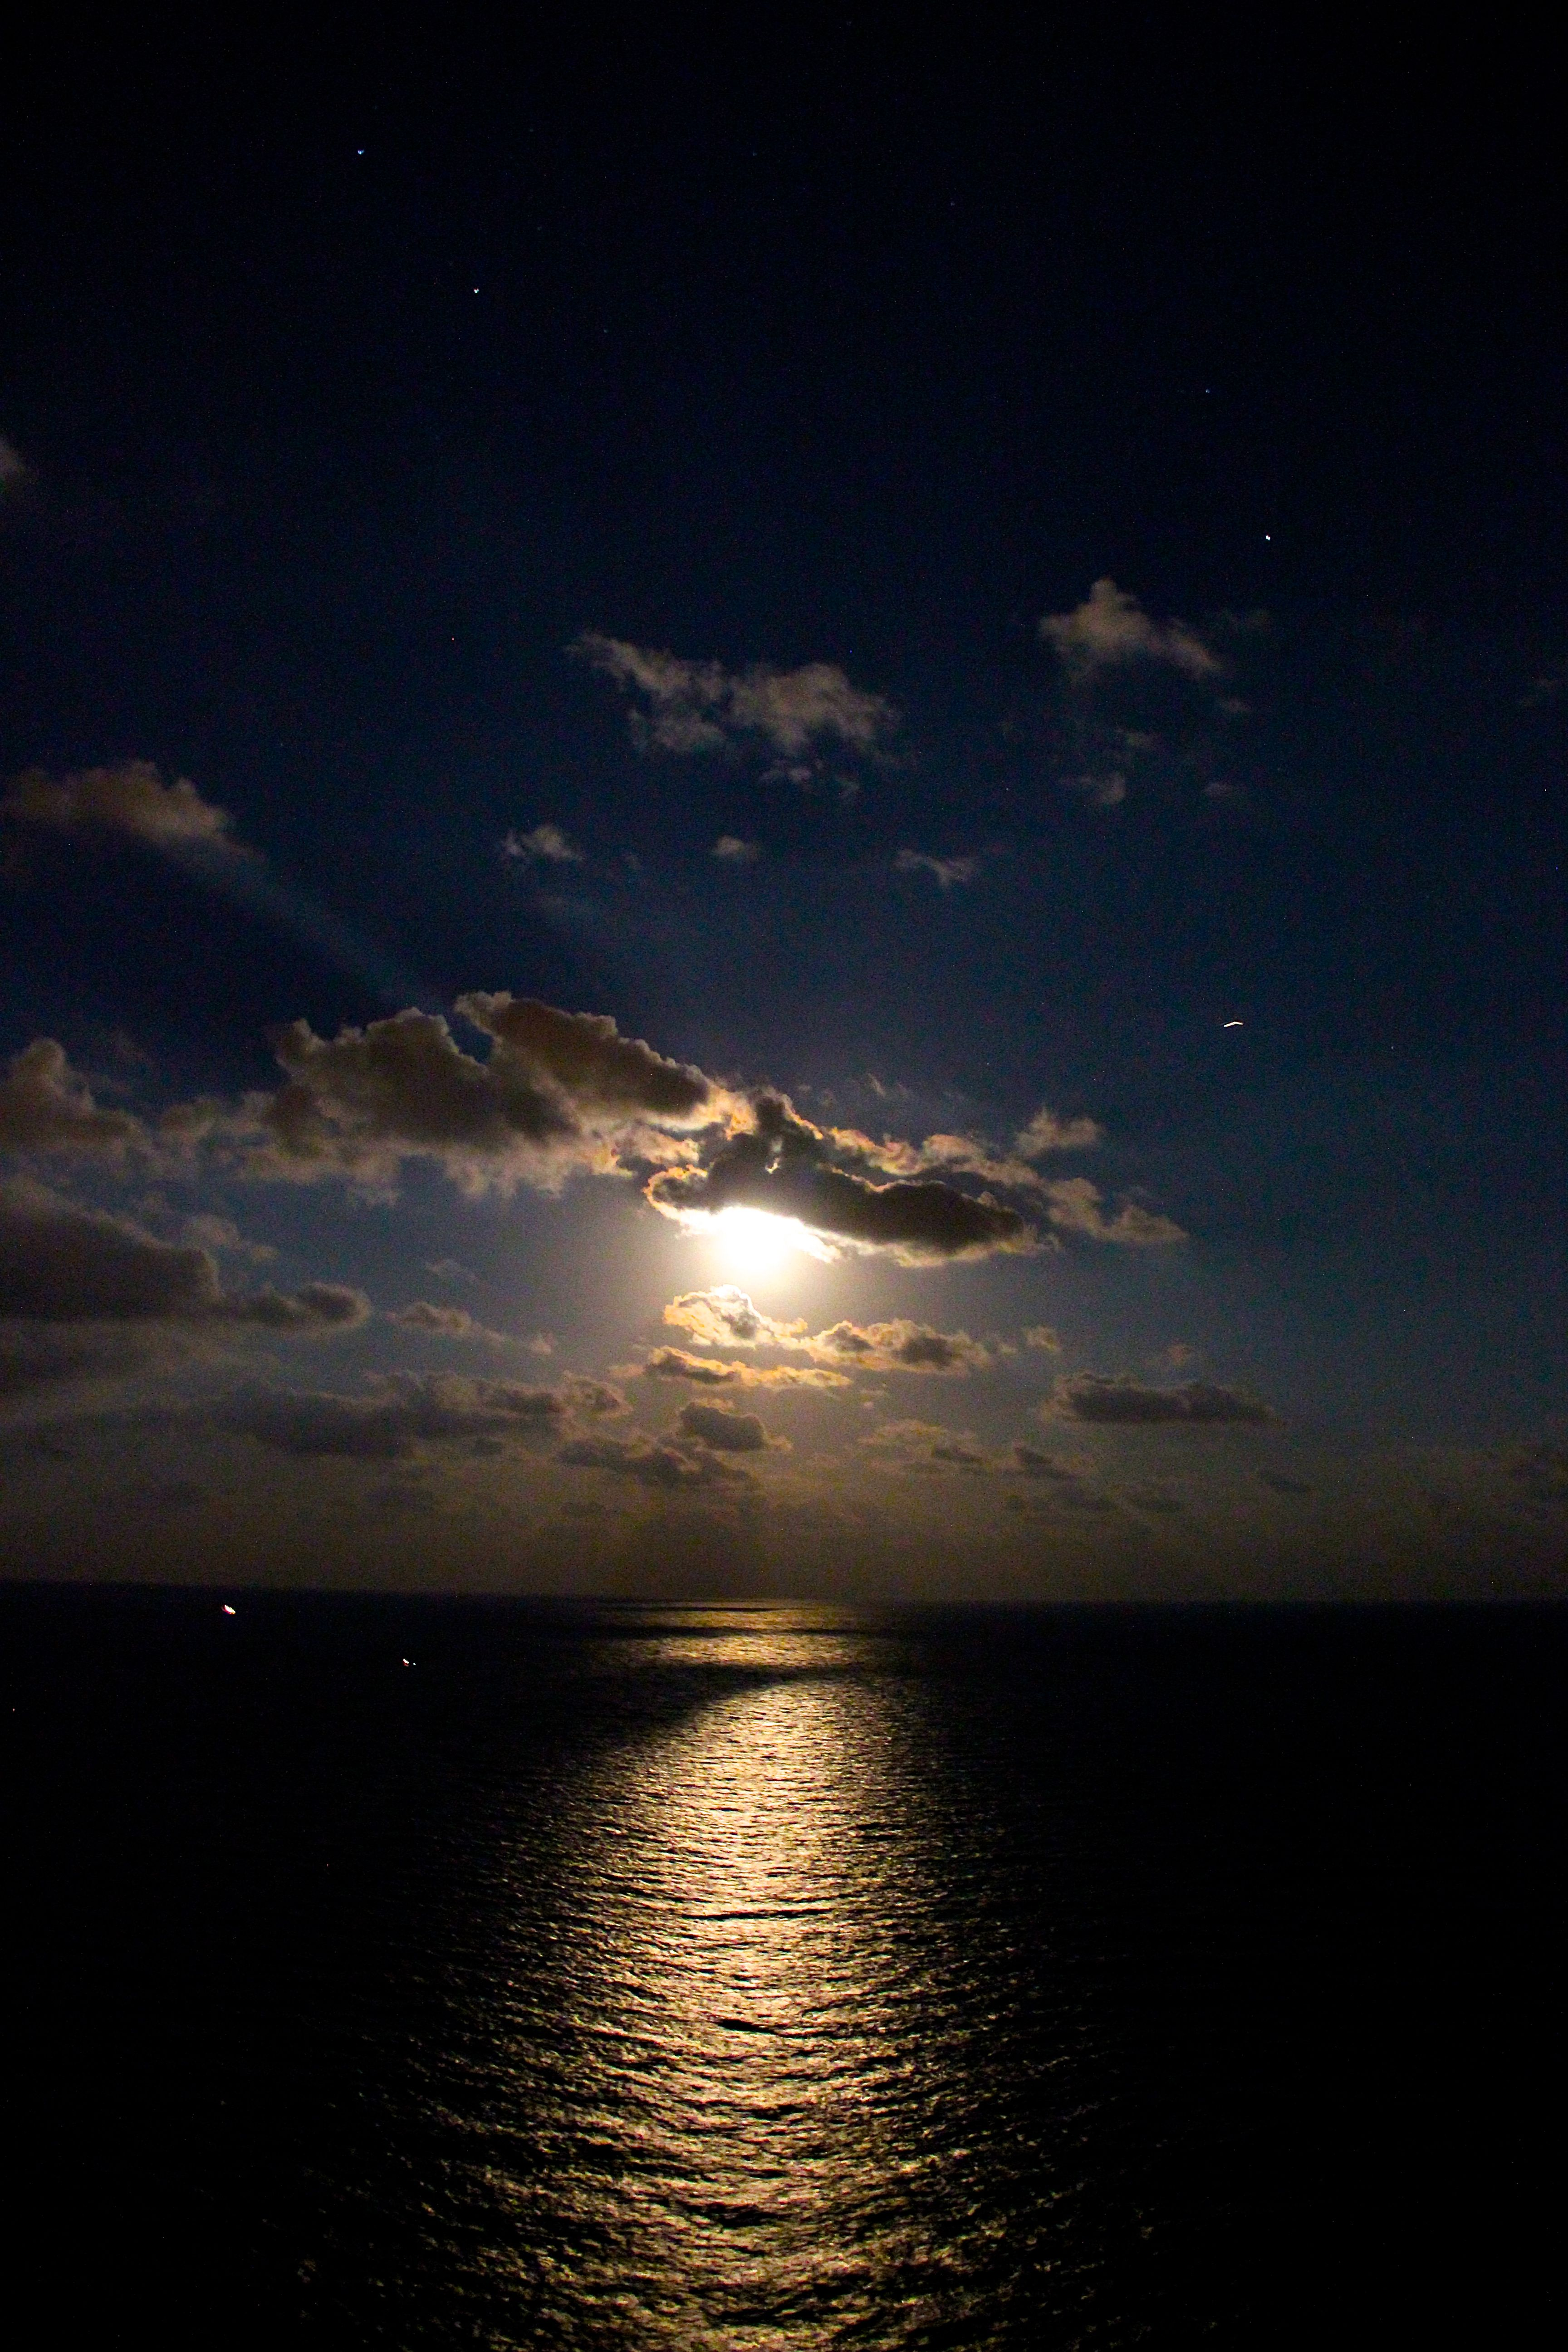 Florida Night Scenery Full Moon Pictures Shoot The Moon